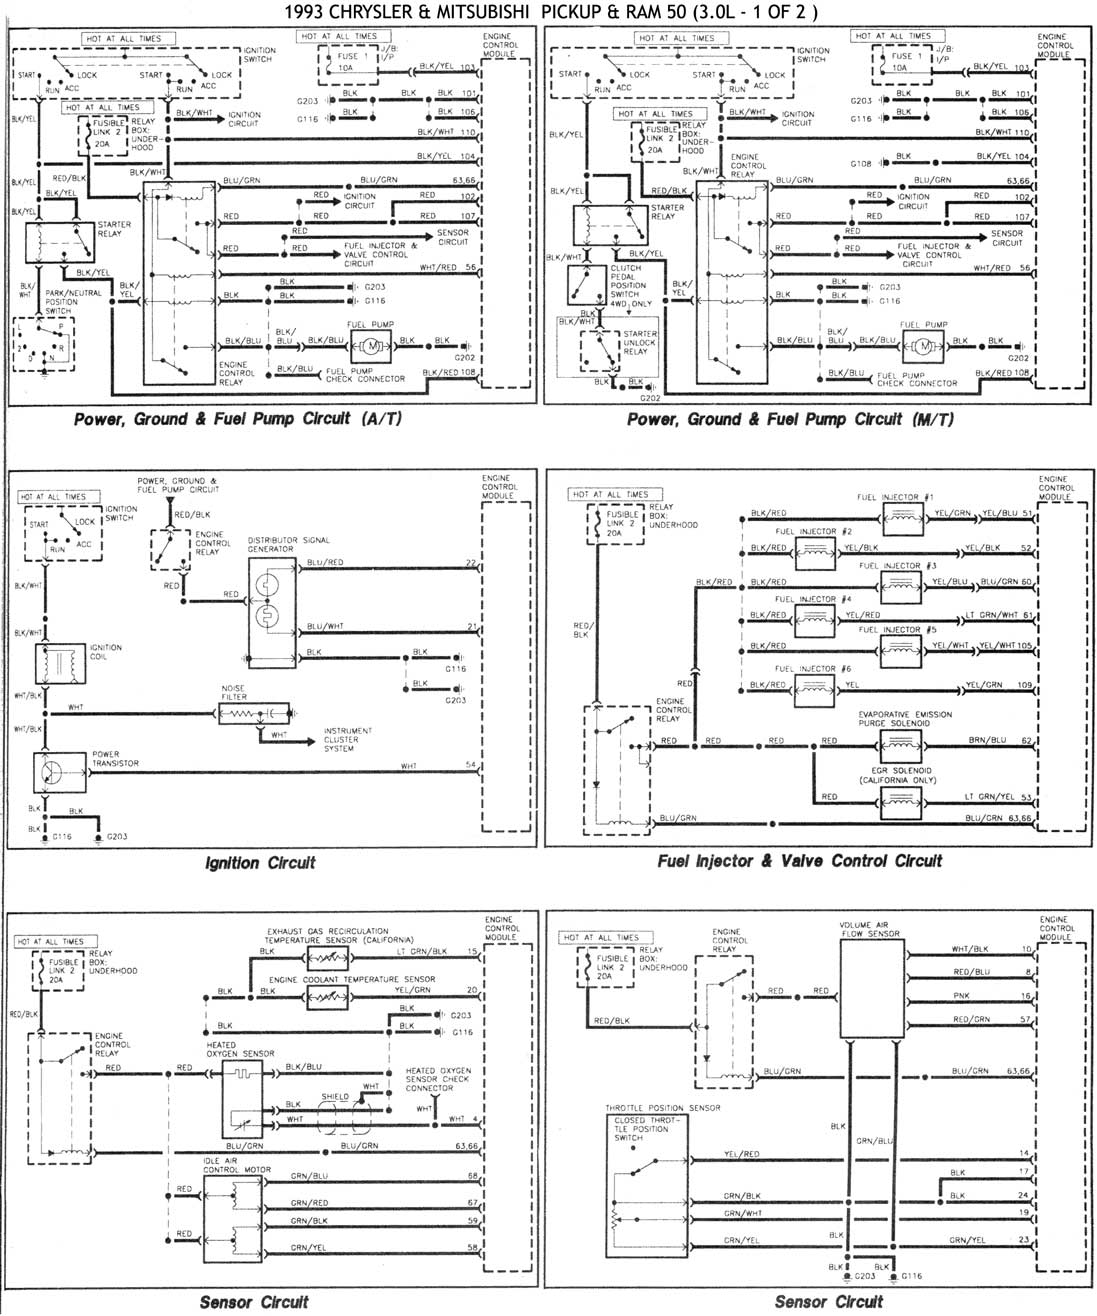 99 suburban radio wiring diagram 99 image wiring 1999 suburban wiring diagram wiring diagram and hernes on 99 suburban radio wiring diagram